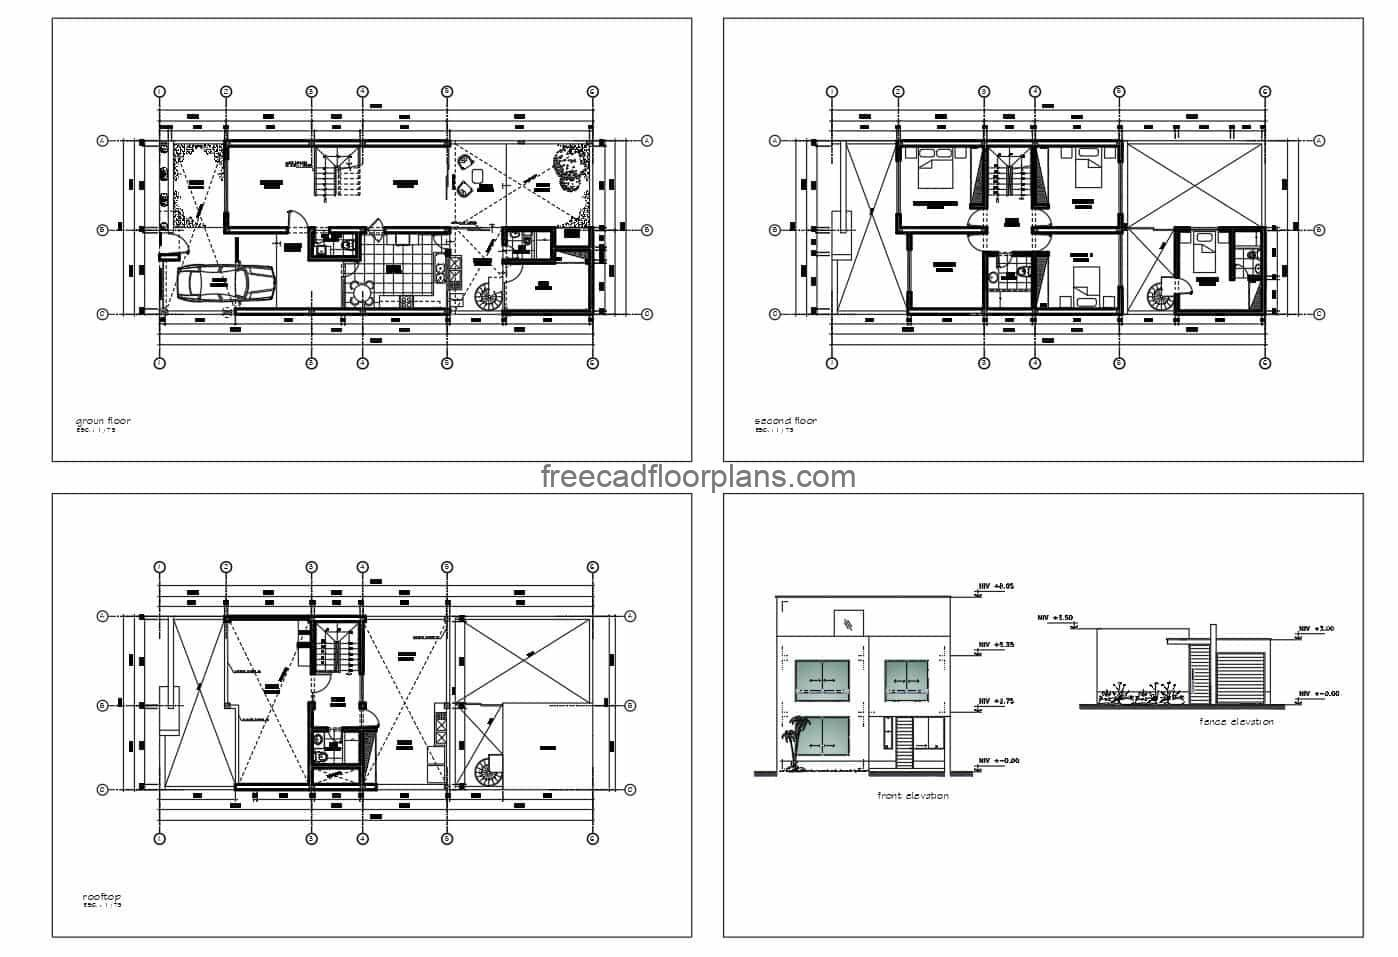 Architectural design in 2D format DWG of Autoca of simple residence of two levels with four rooms in total, in the first level social areas with garage for a vehicle, living room, kitchen dining room, patio, office, a bath and garden in the front and back. Second level private areas with four bedrooms and two bathrooms, study room and front terrace. Detailed plans in DWG format with dimensions for free download.